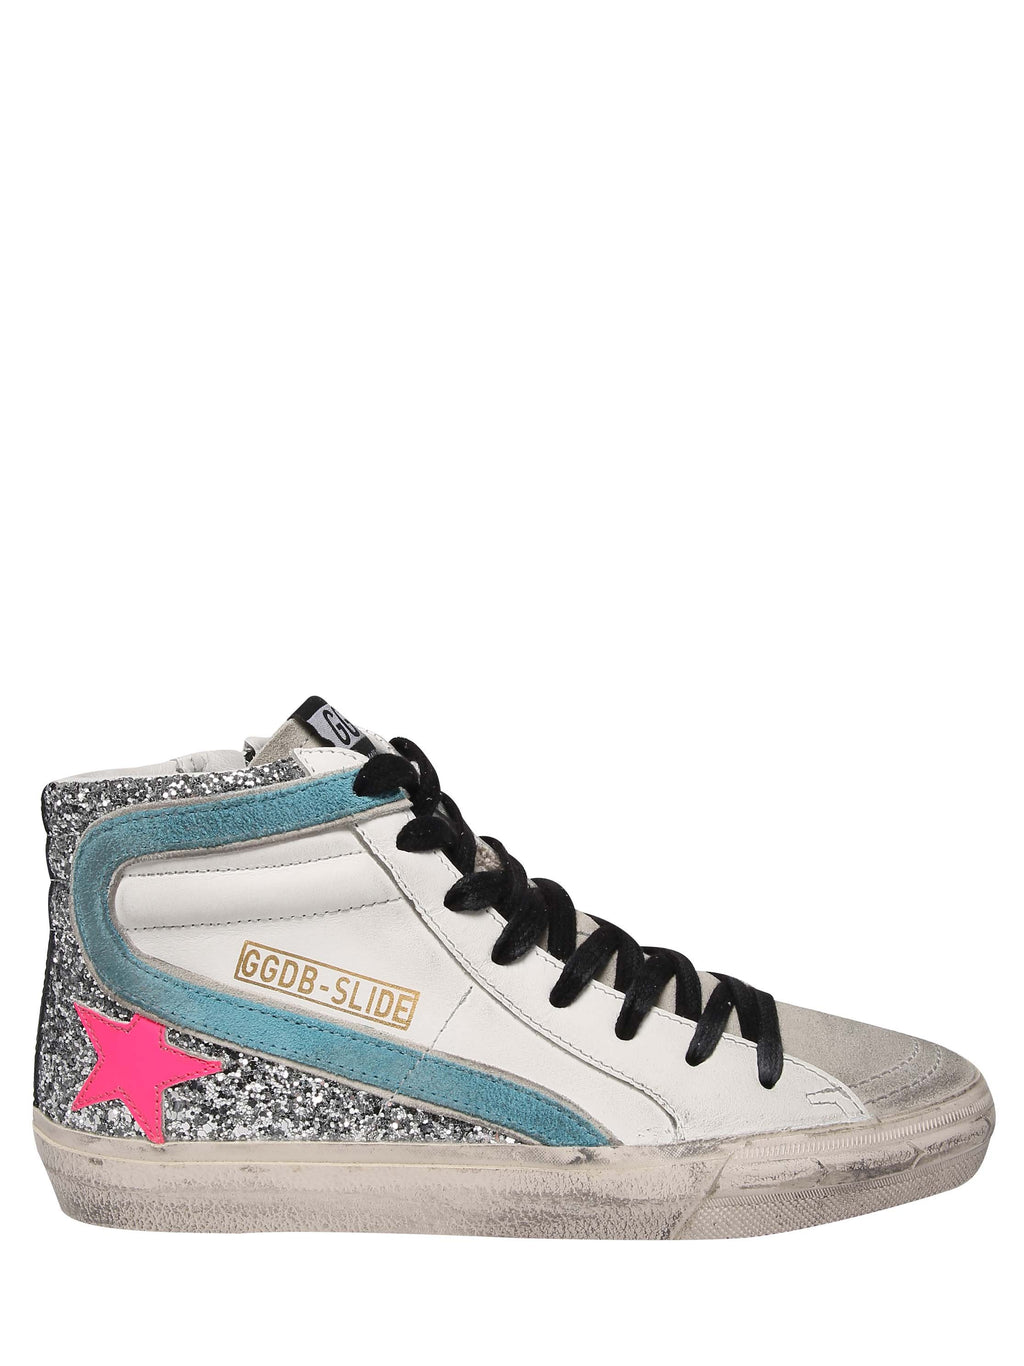 GOLDEN GOOSE High leather sneakers model Slide